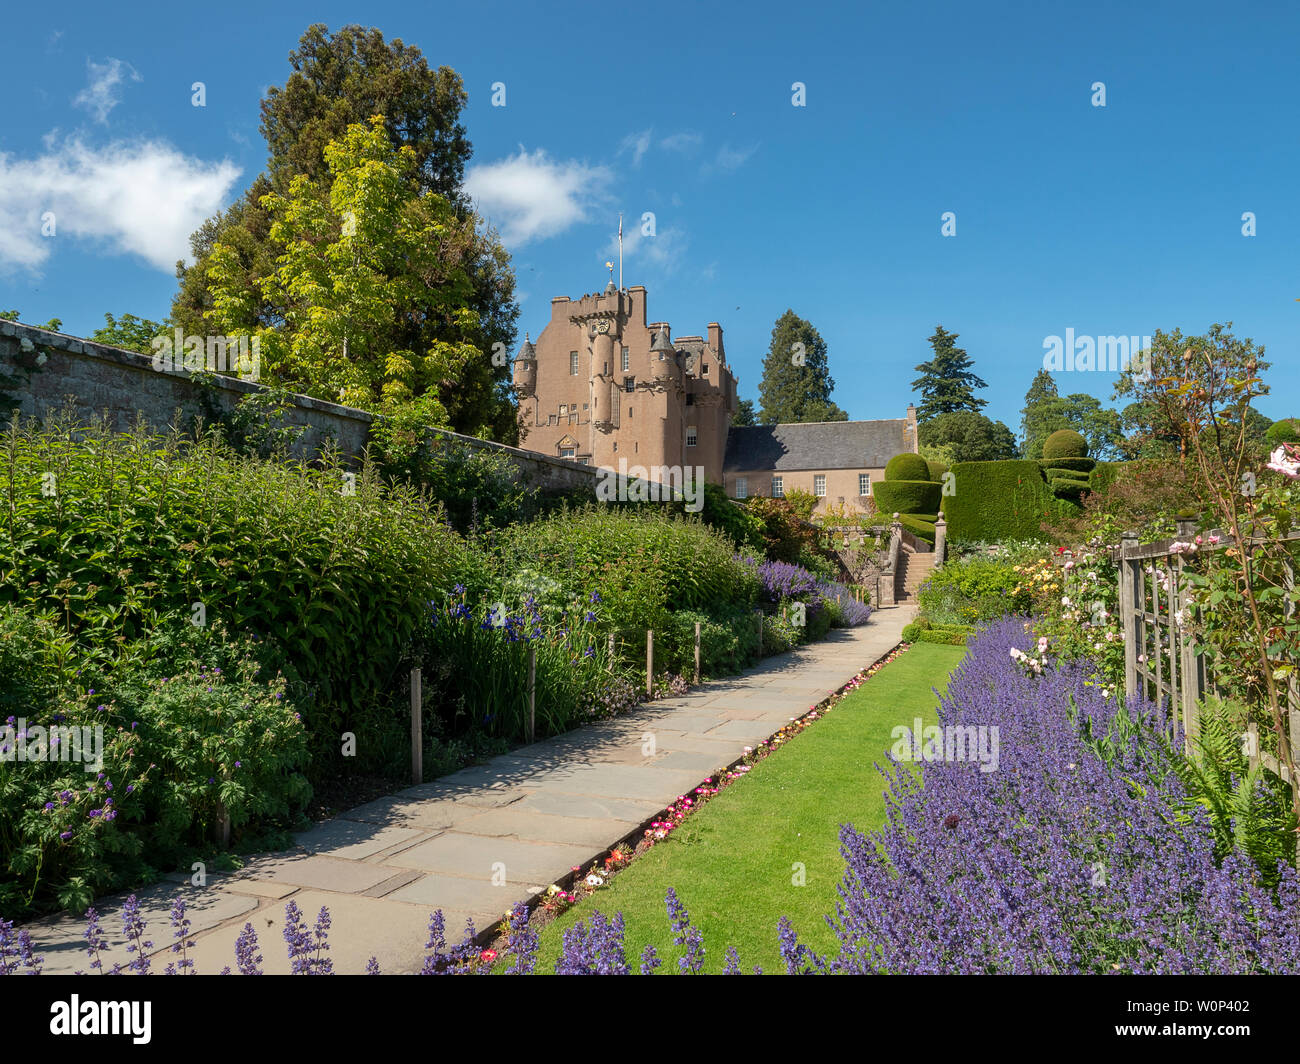 Part of the Walled Gardens at Crathes Castle, Scotland Stock Photo